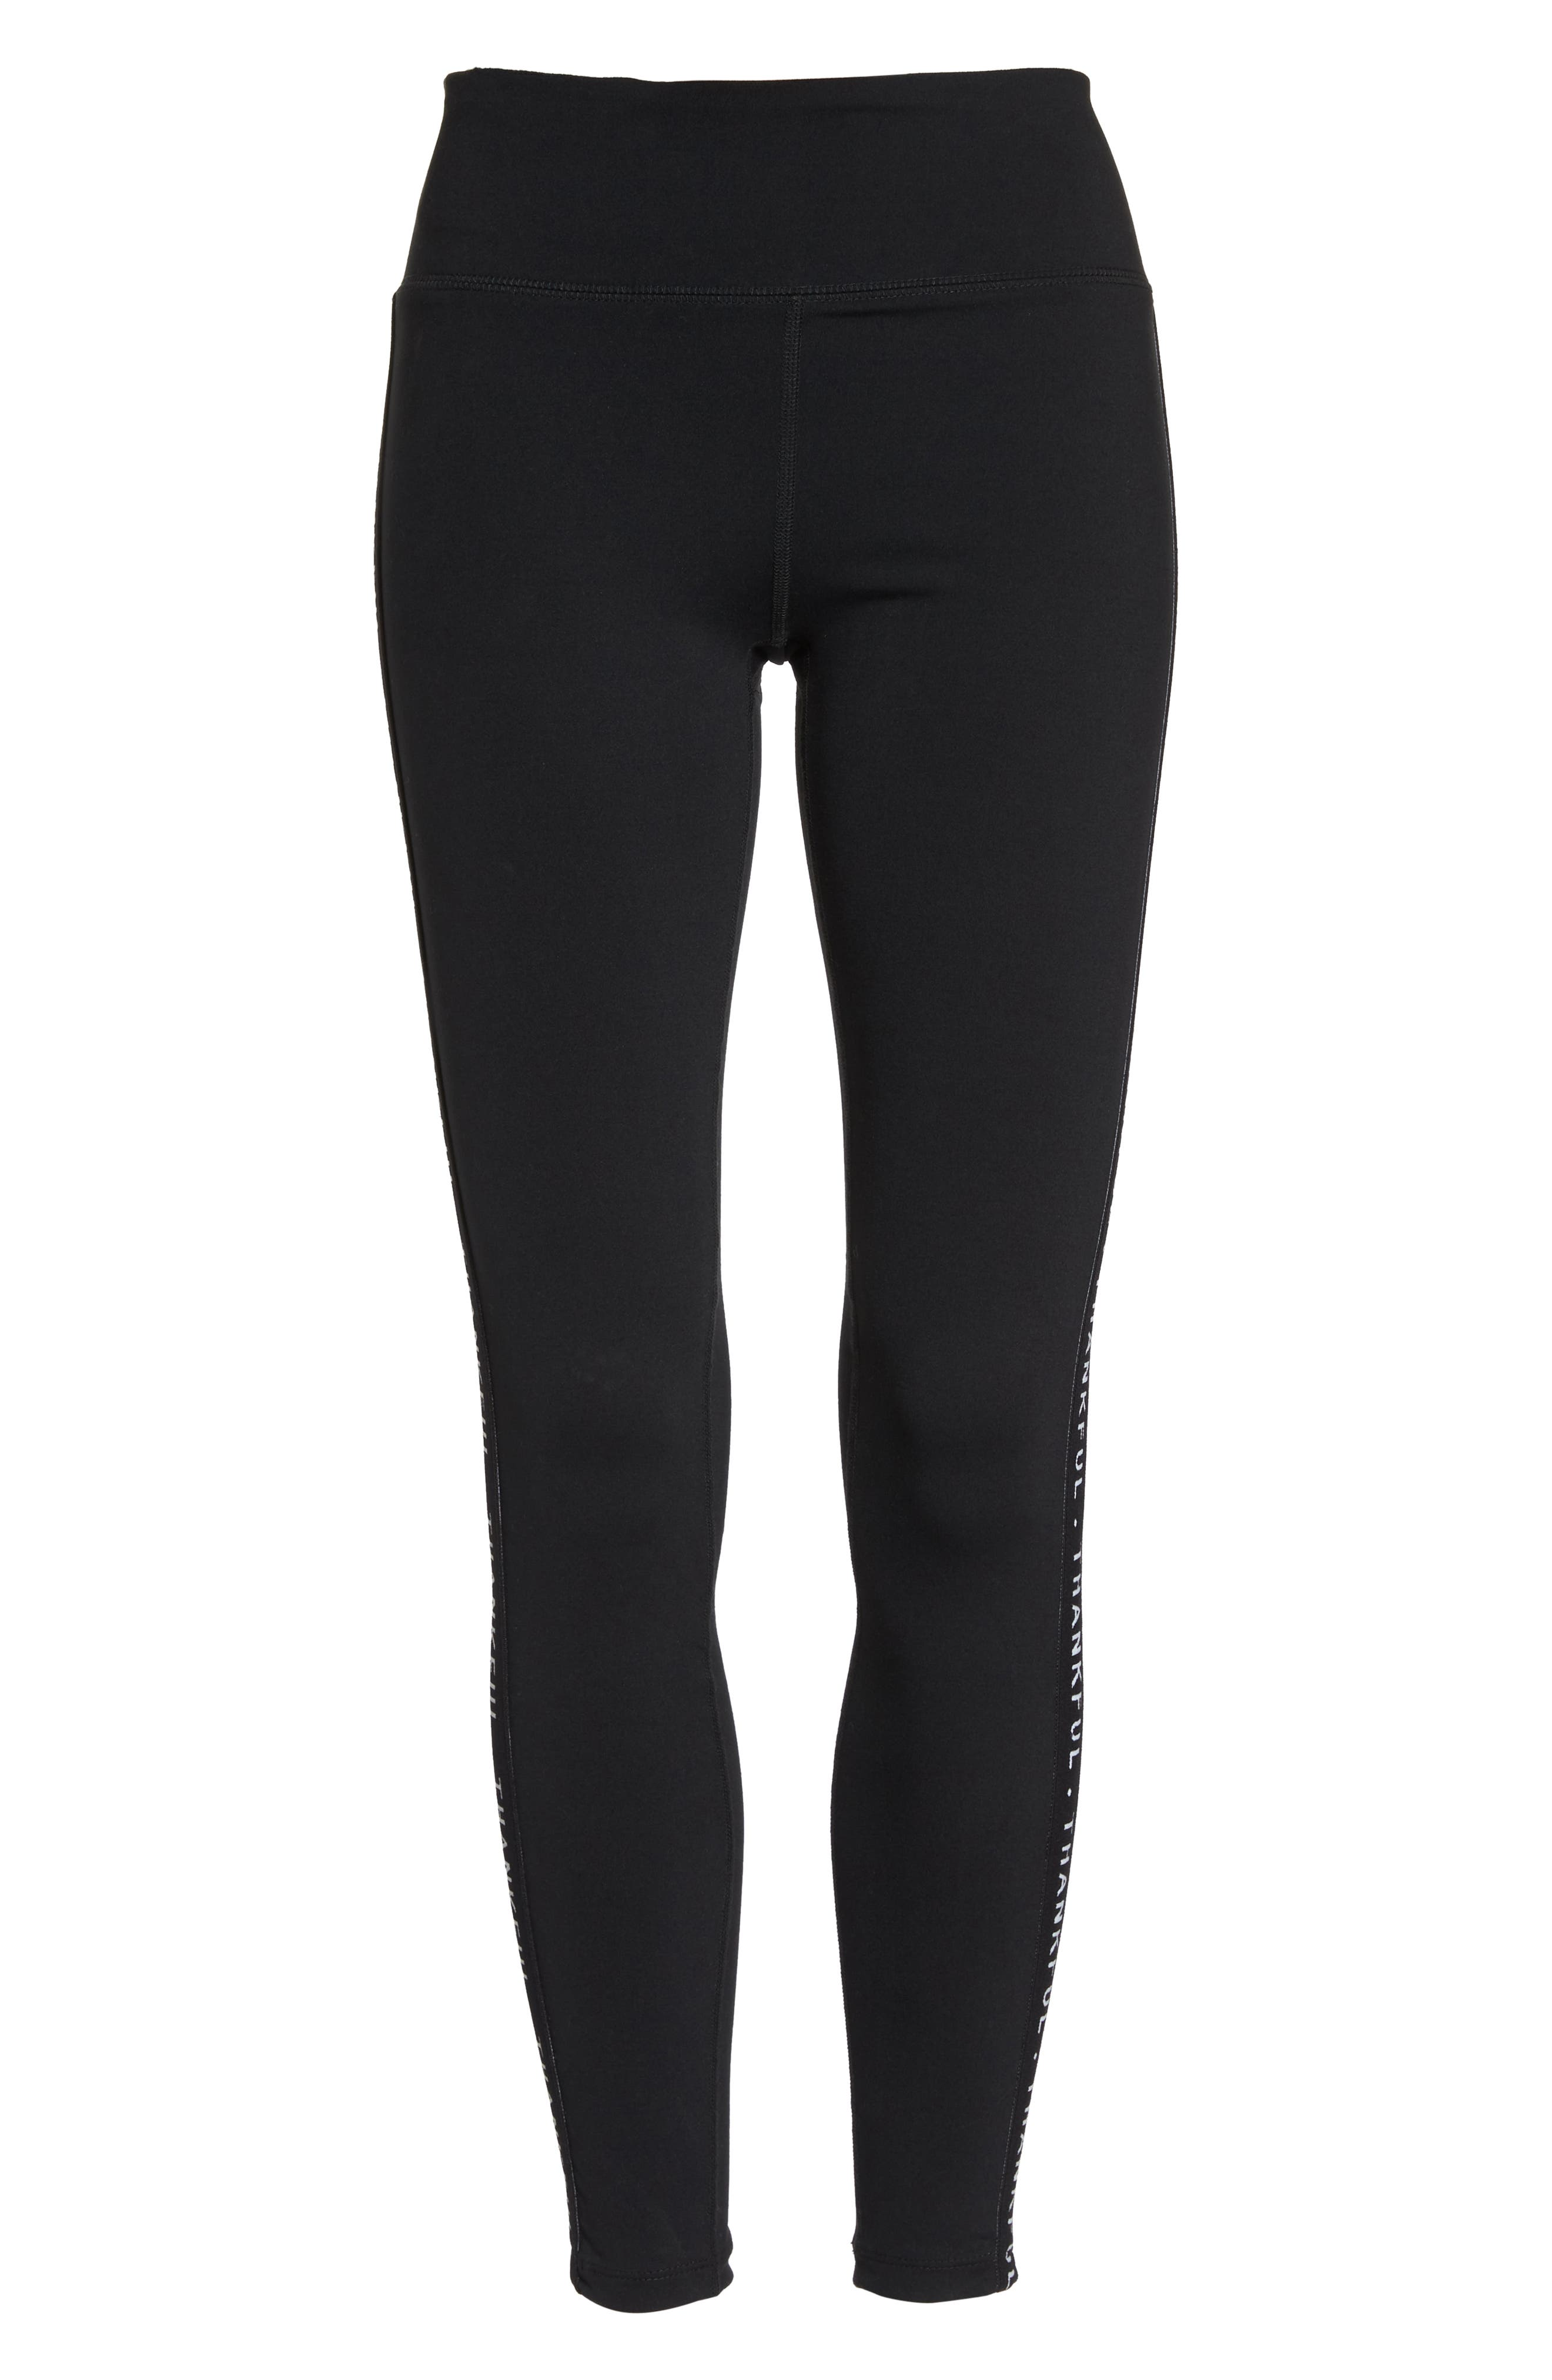 Vivian Thankful Leggings,                             Alternate thumbnail 7, color,                             001